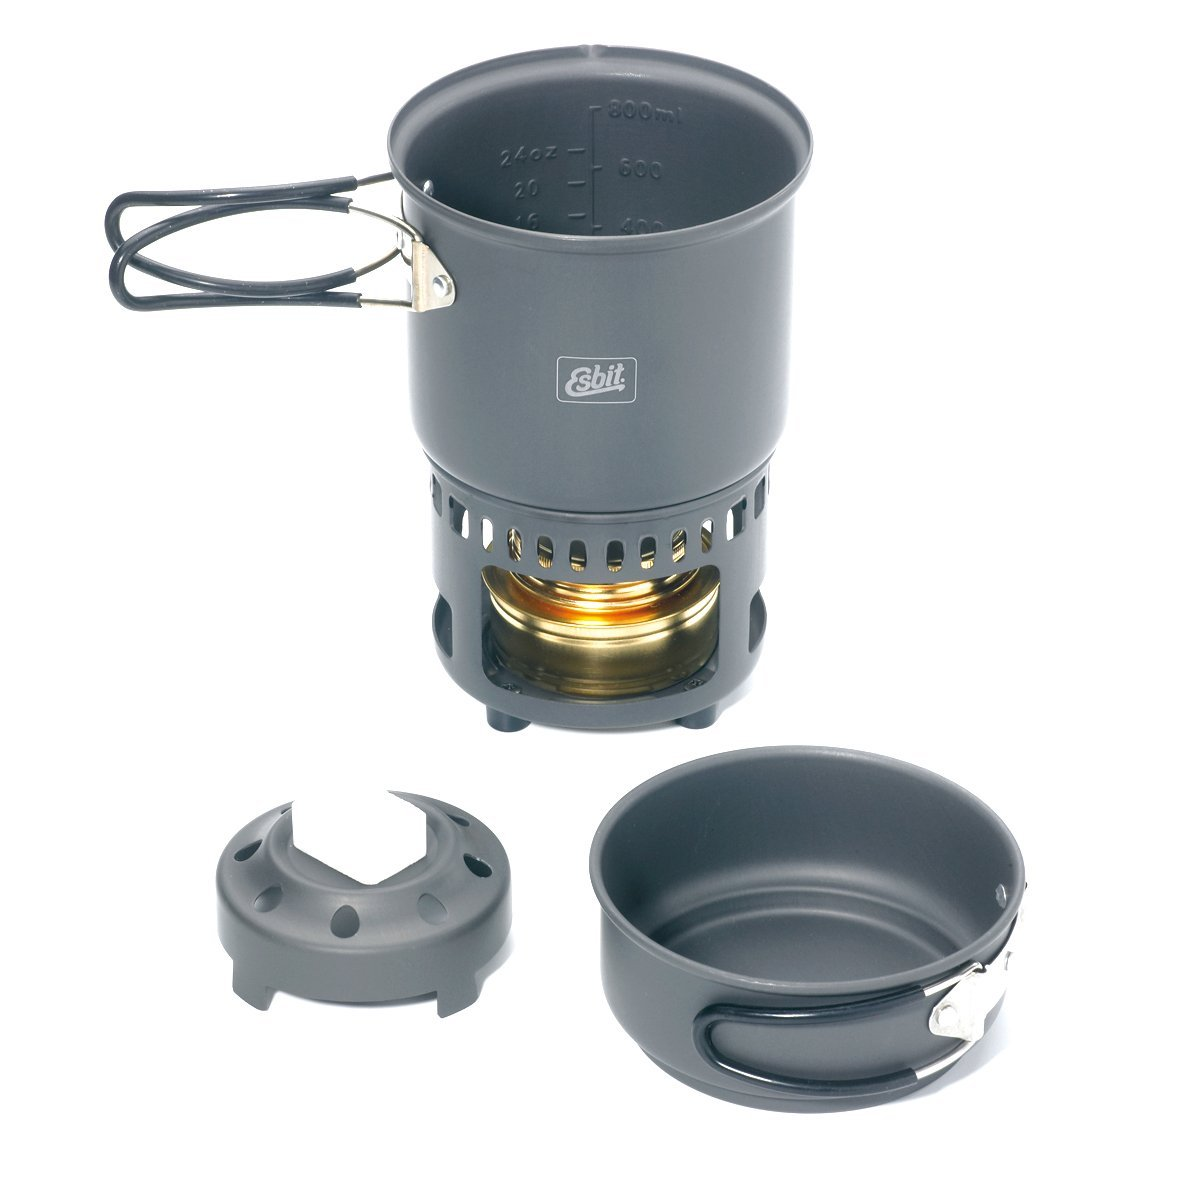 Alcohol | Camping Stoves and Other Gear Reviews